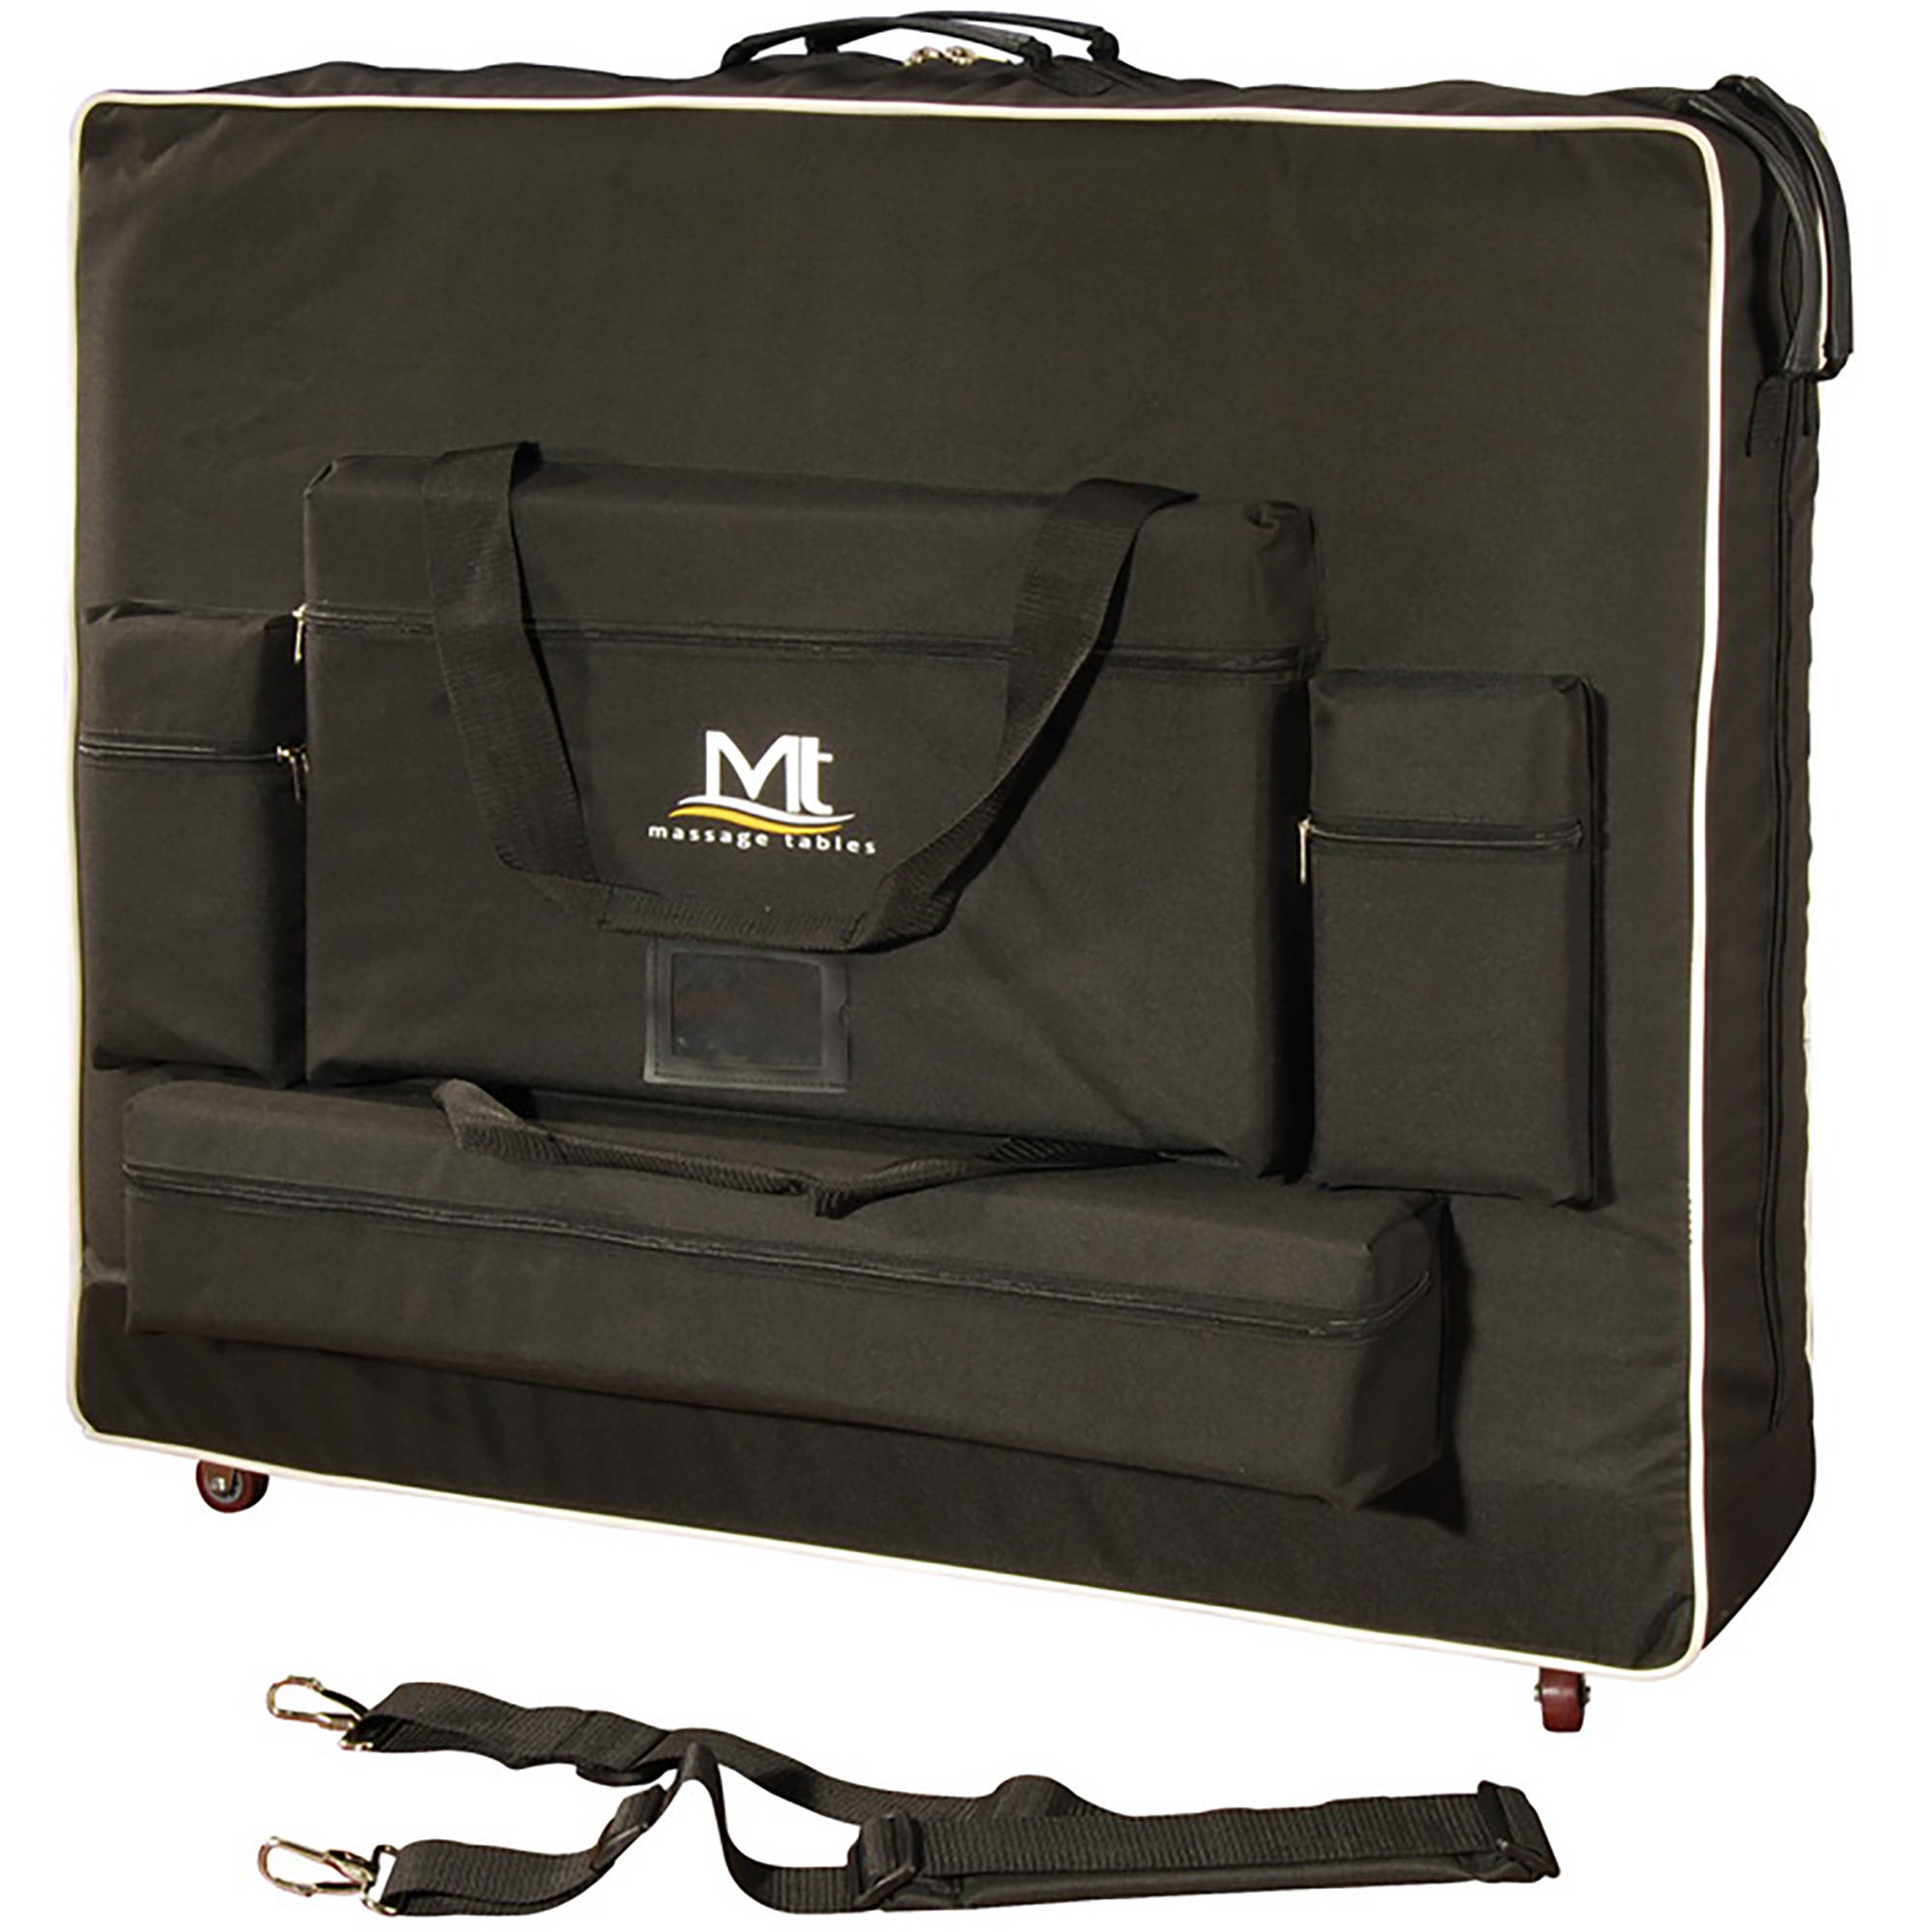 MT Massage Deluxe Case with Wheels